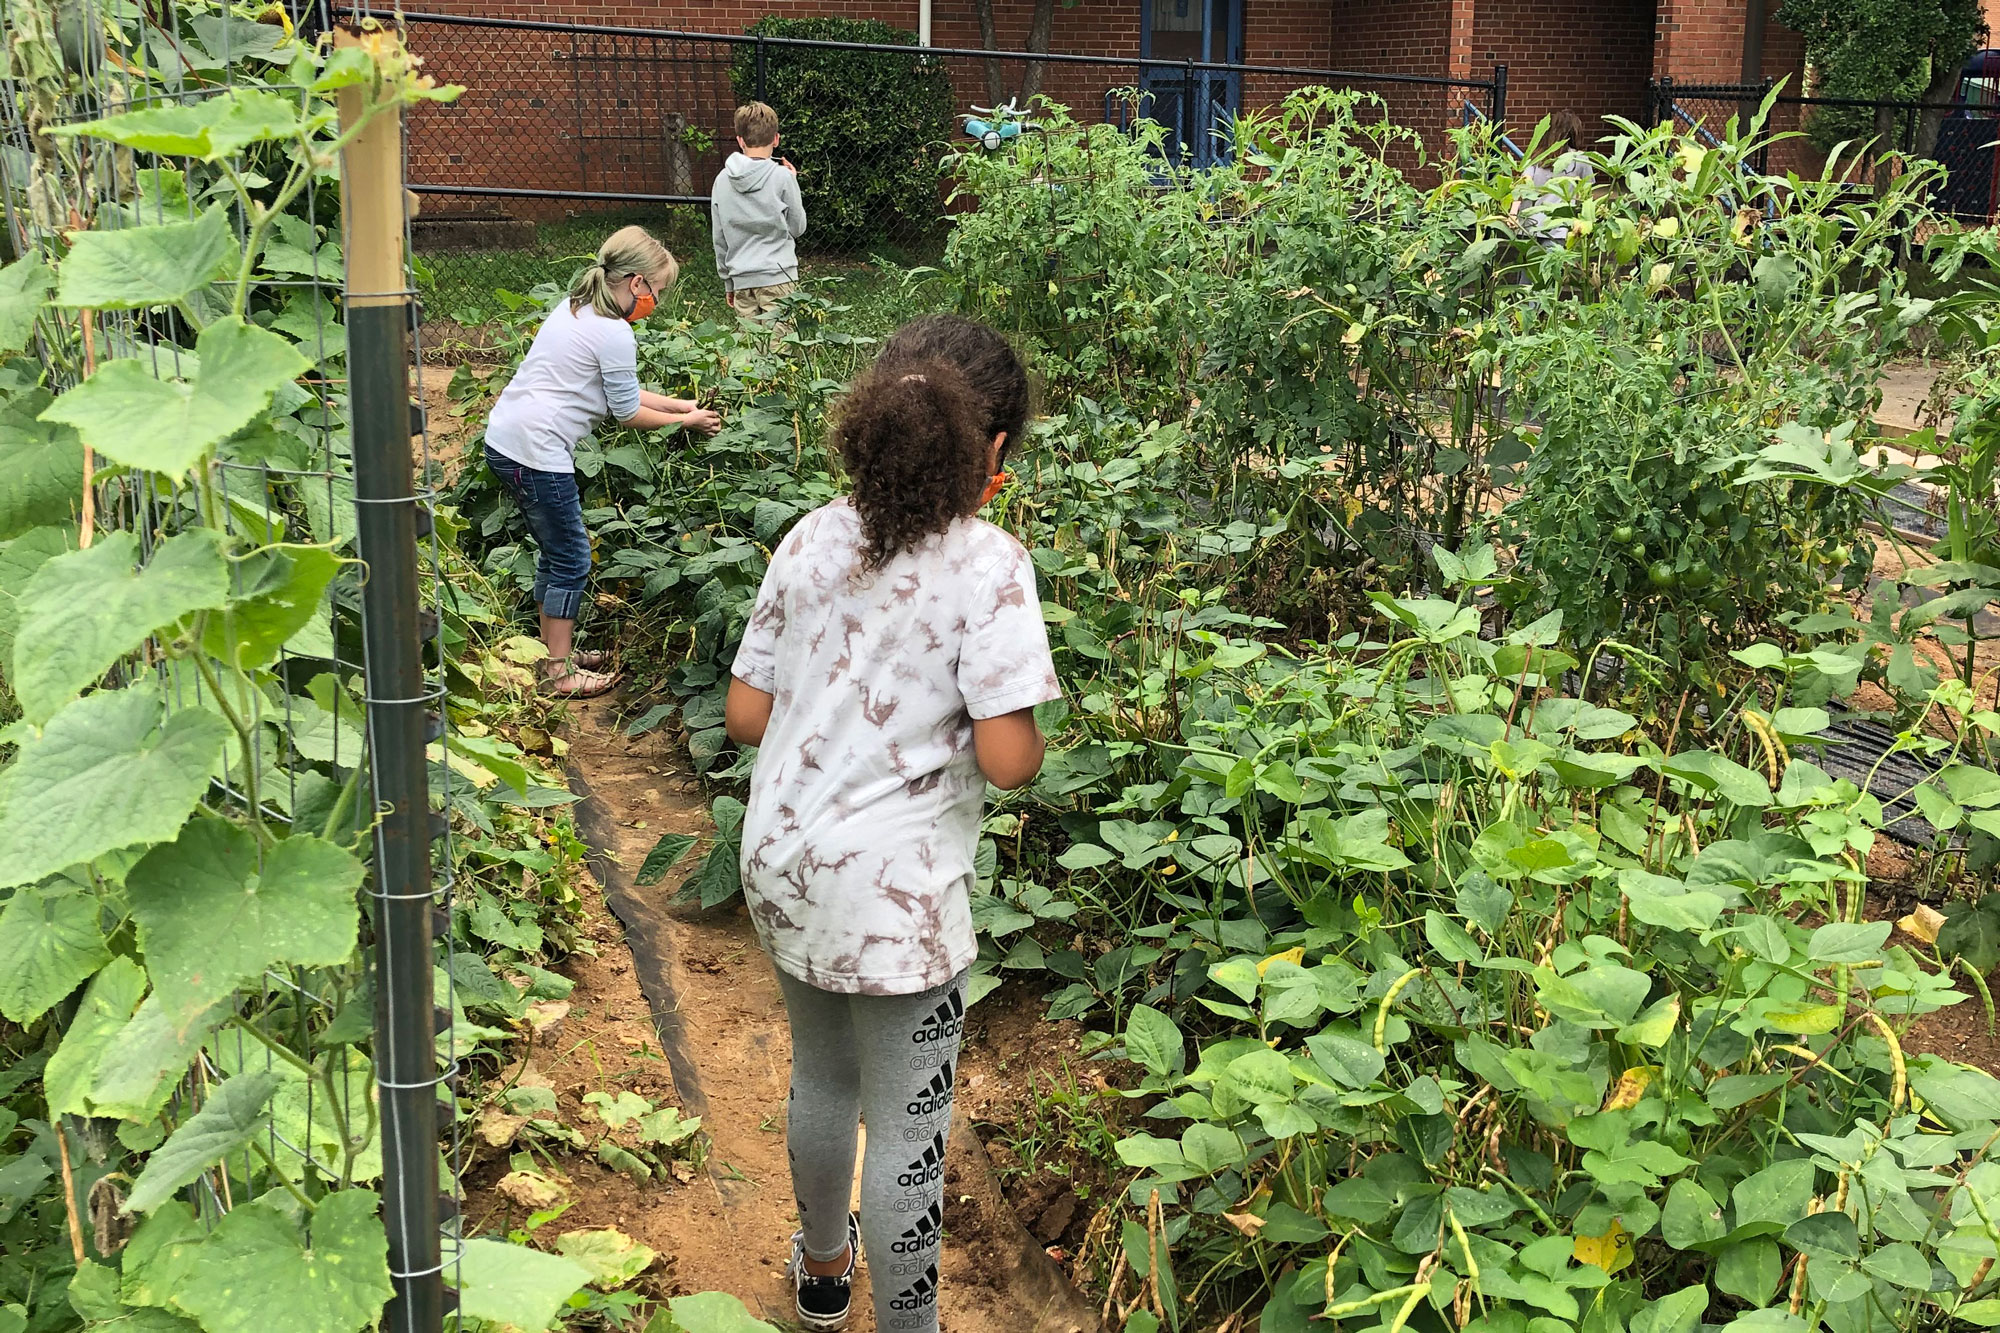 3 students picking beans in their schoolyard